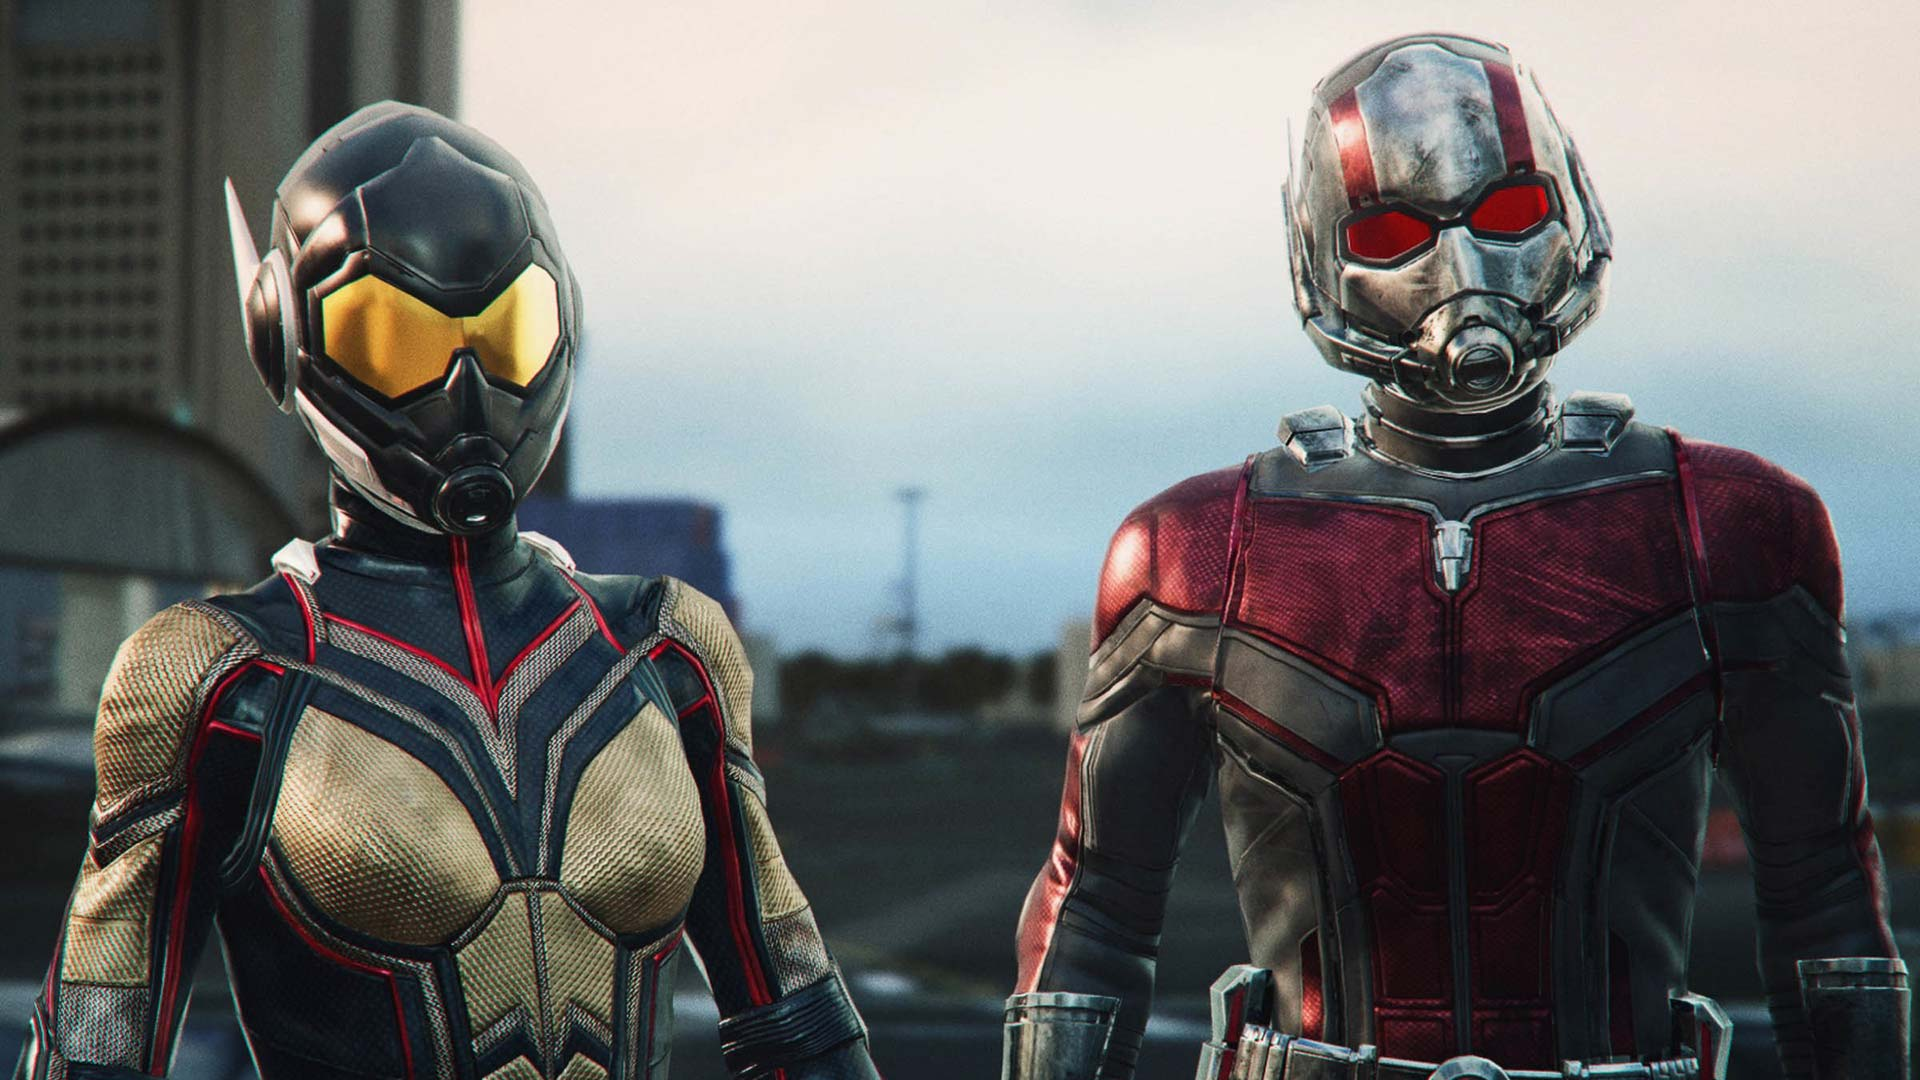 Avengers: Damage Control Ant-Man and The Wasp